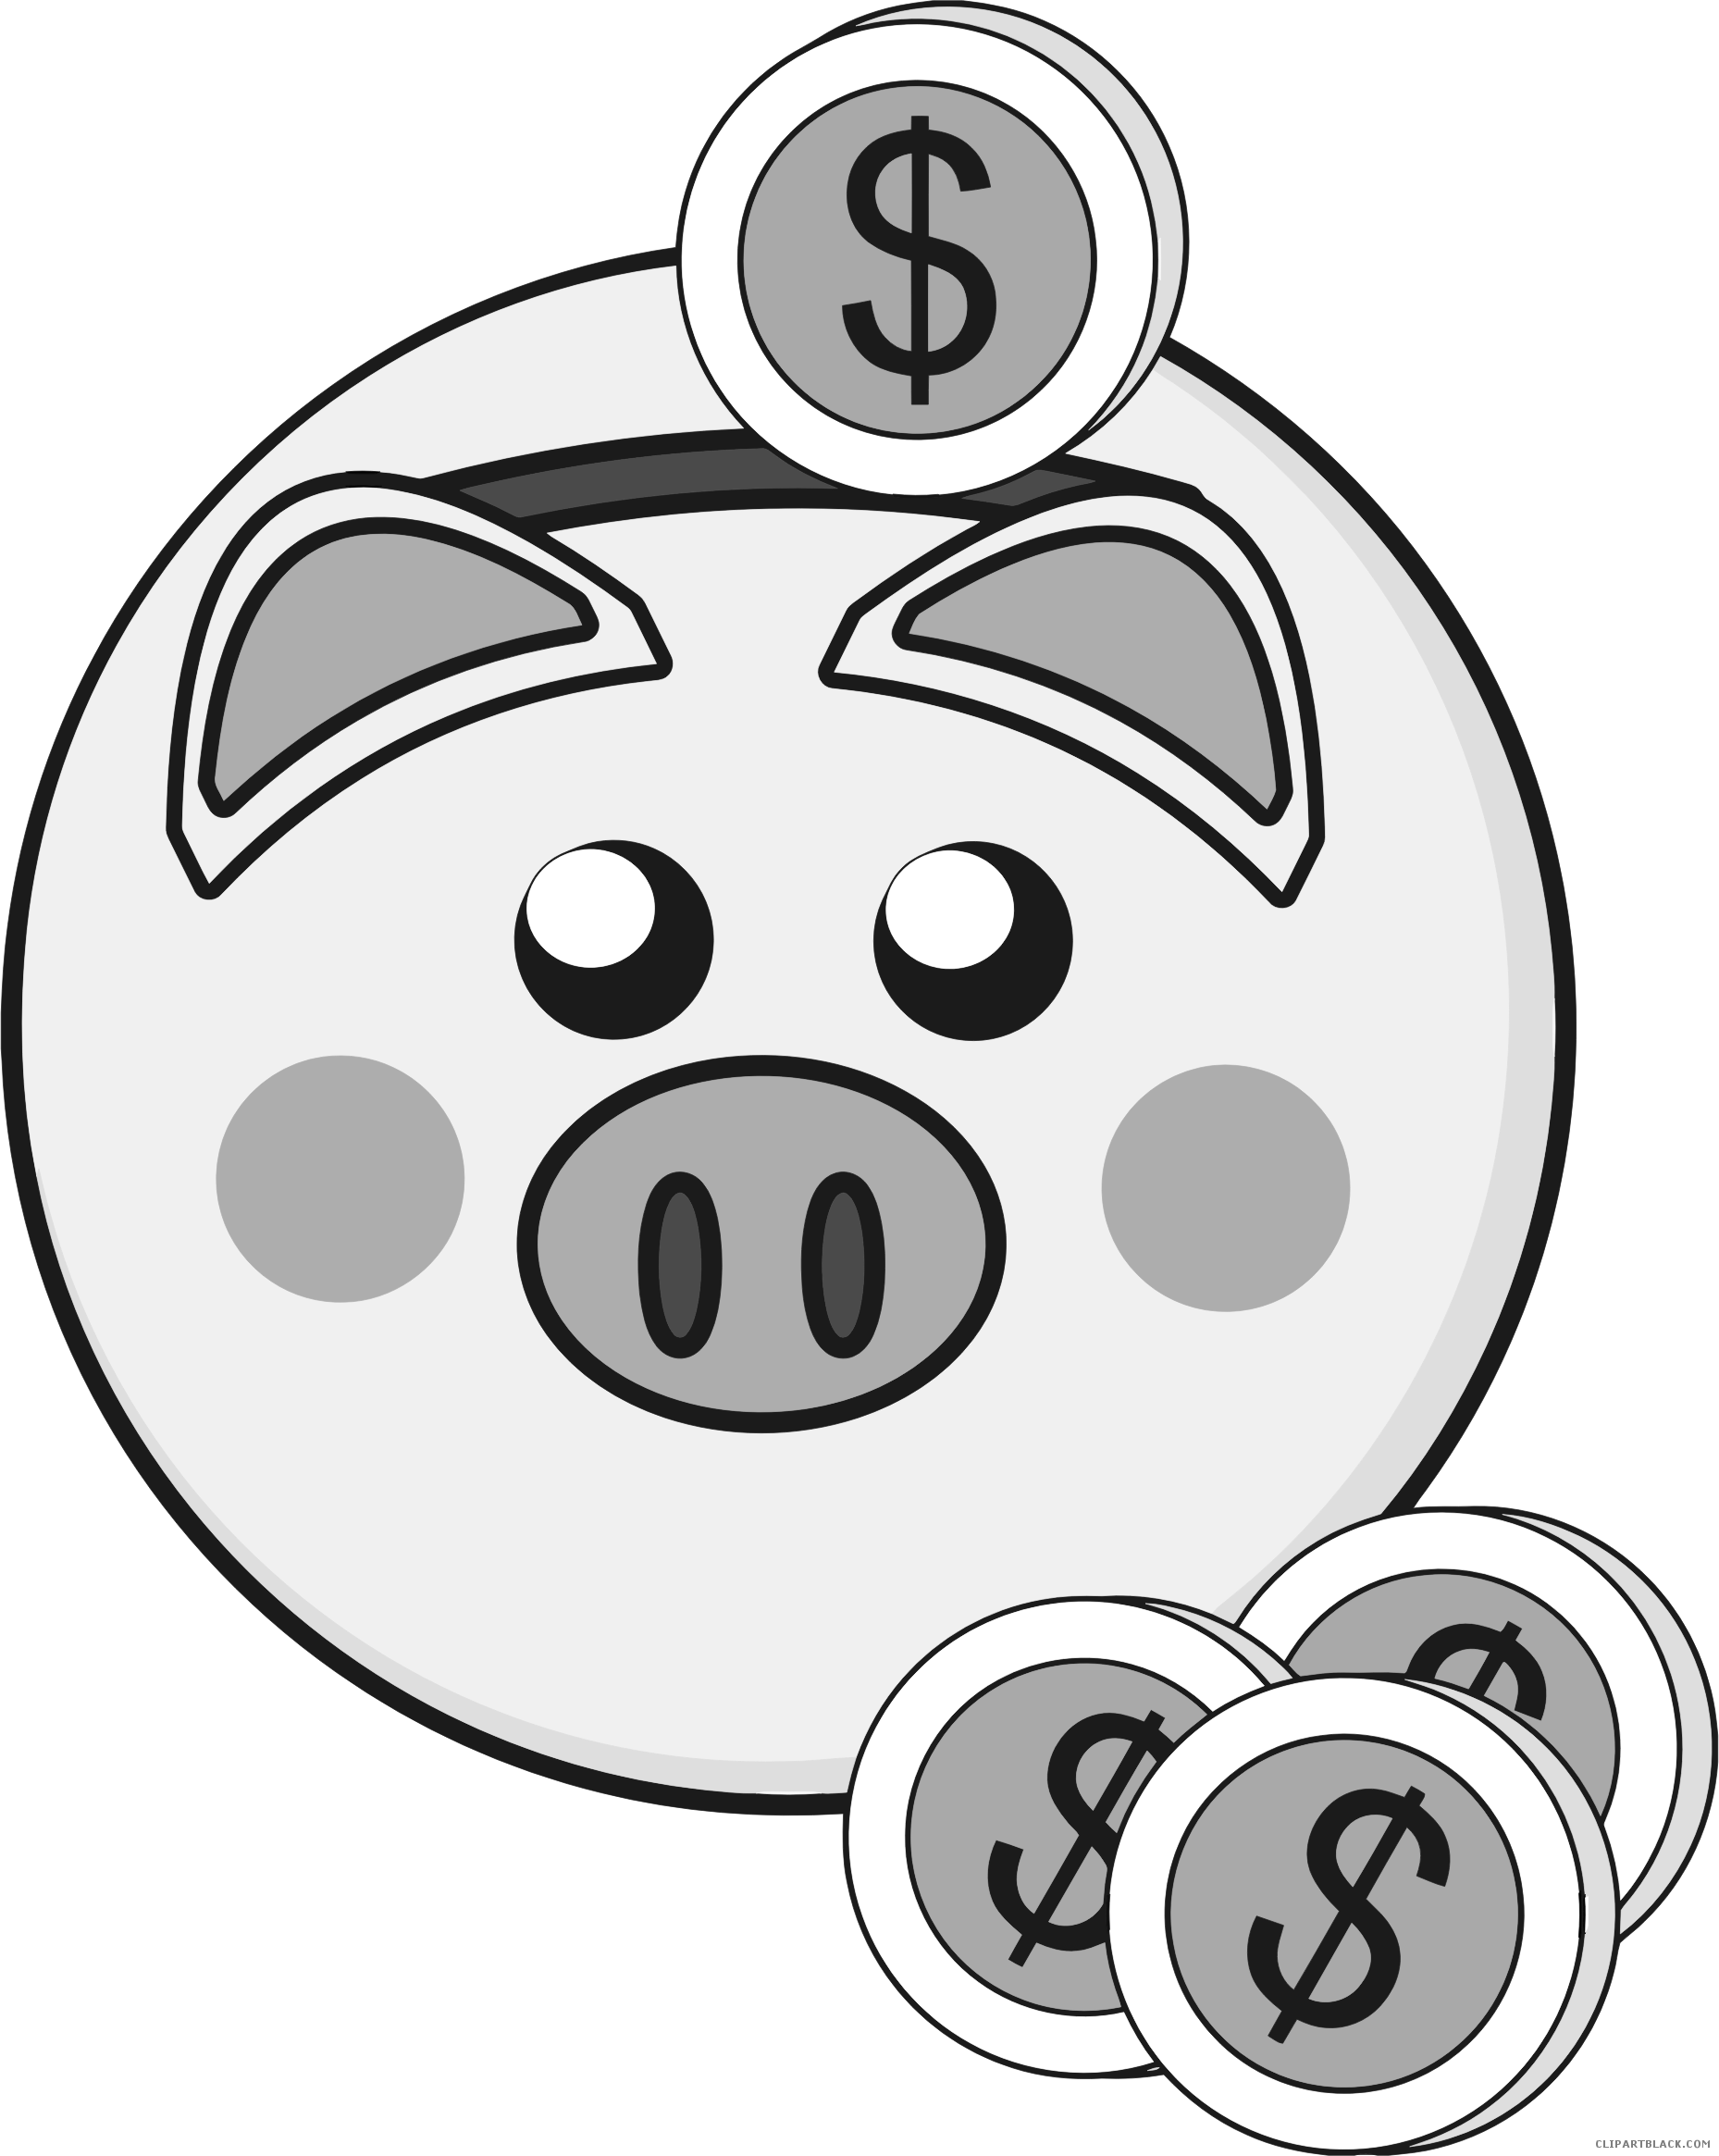 Black and white clipart of fish on a bank jpg black and white stock Piggy Bank Clipart - ClipartBlack.com jpg black and white stock